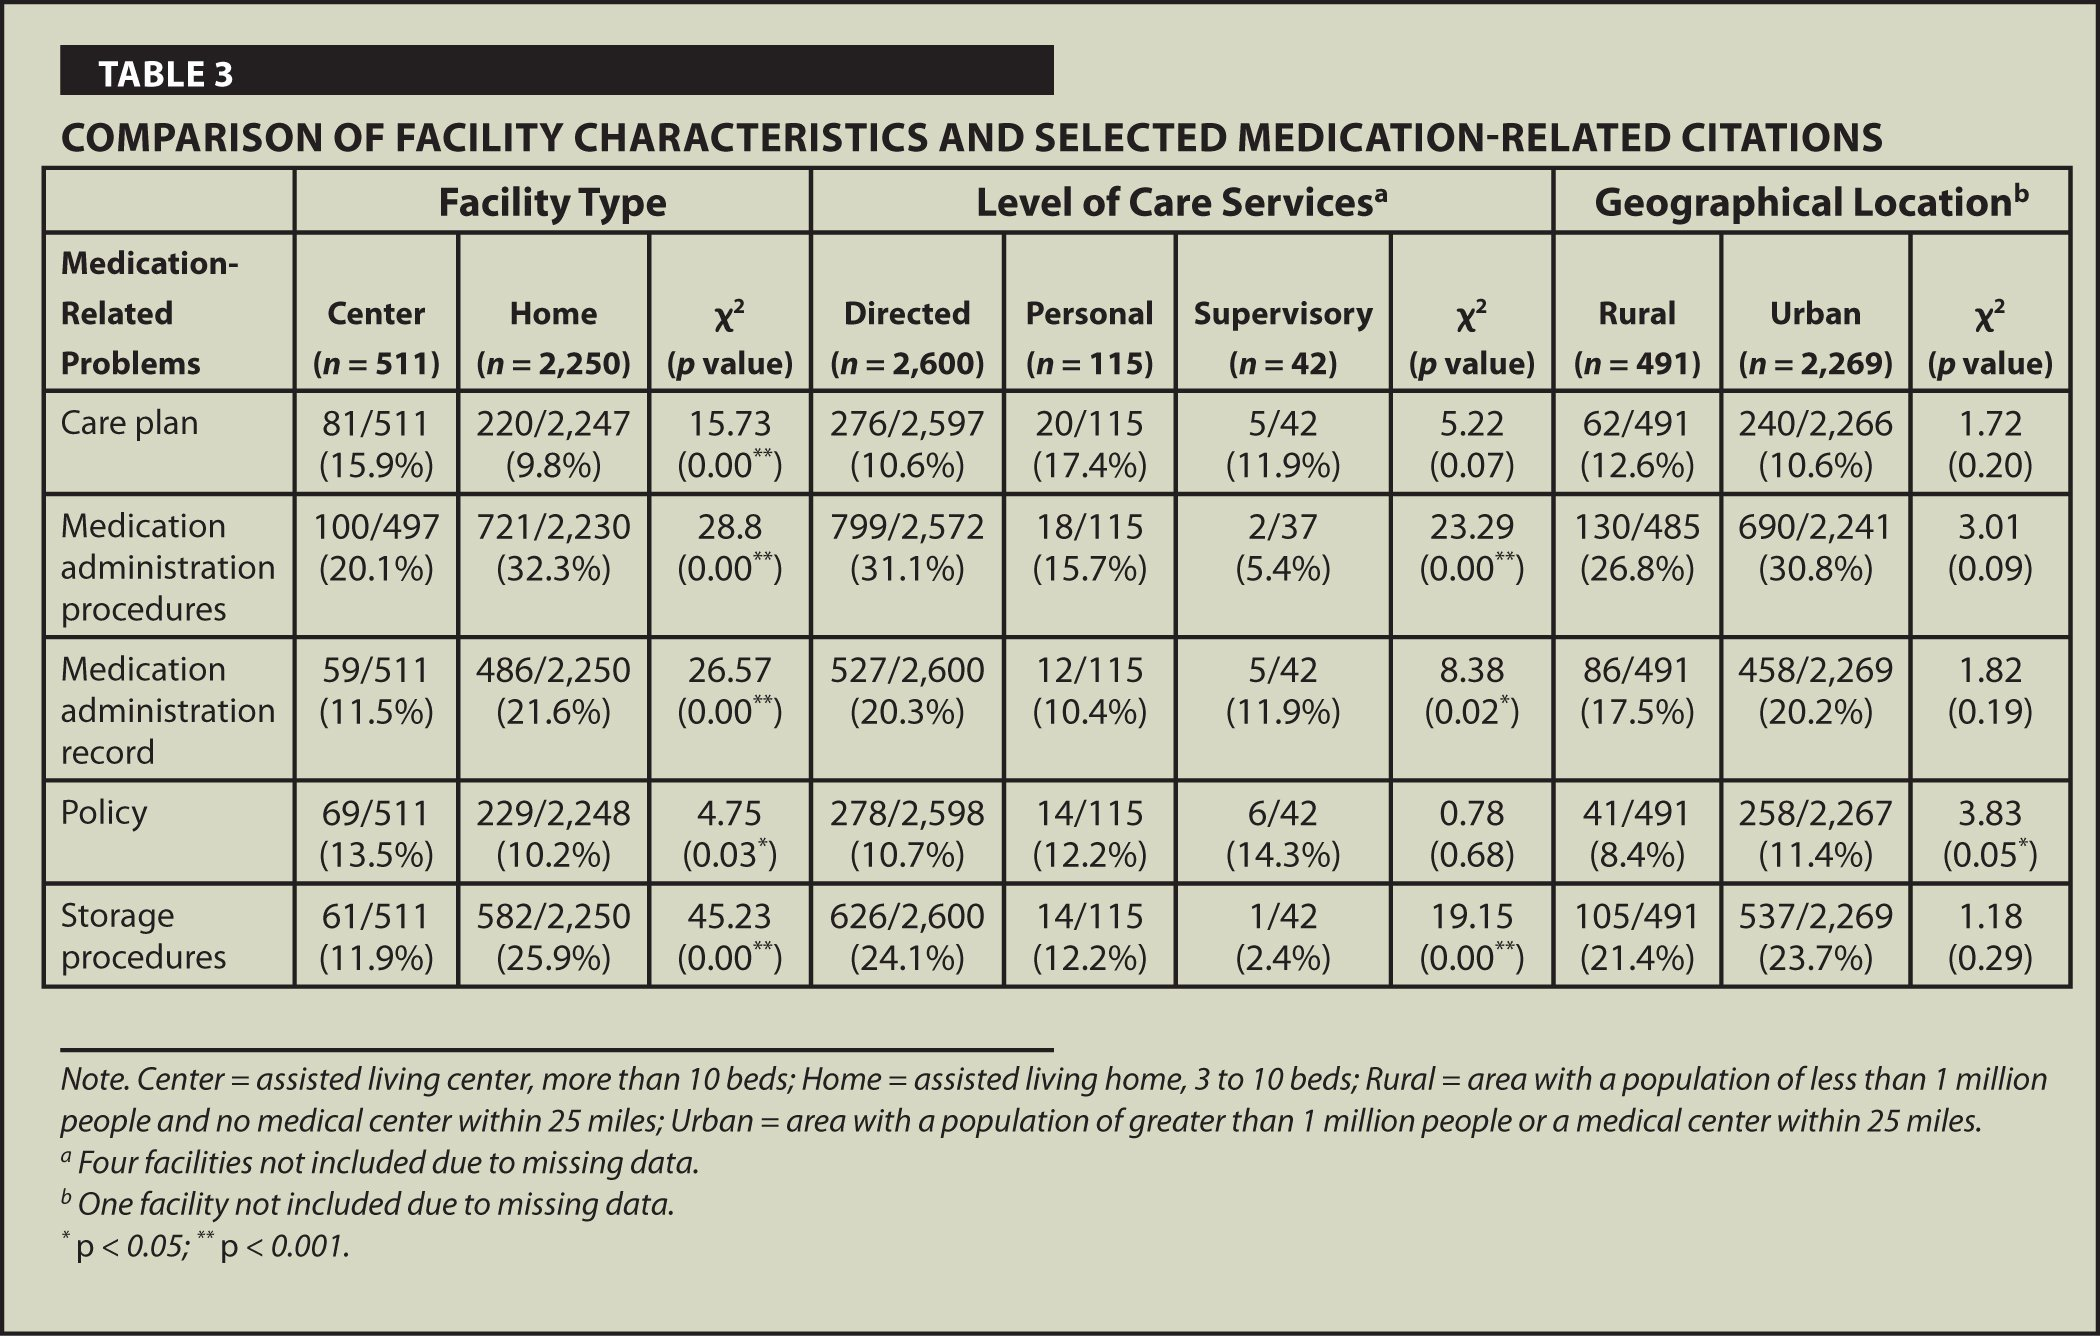 Comparison of Facility Characteristics and Selected Medication-Related Citations